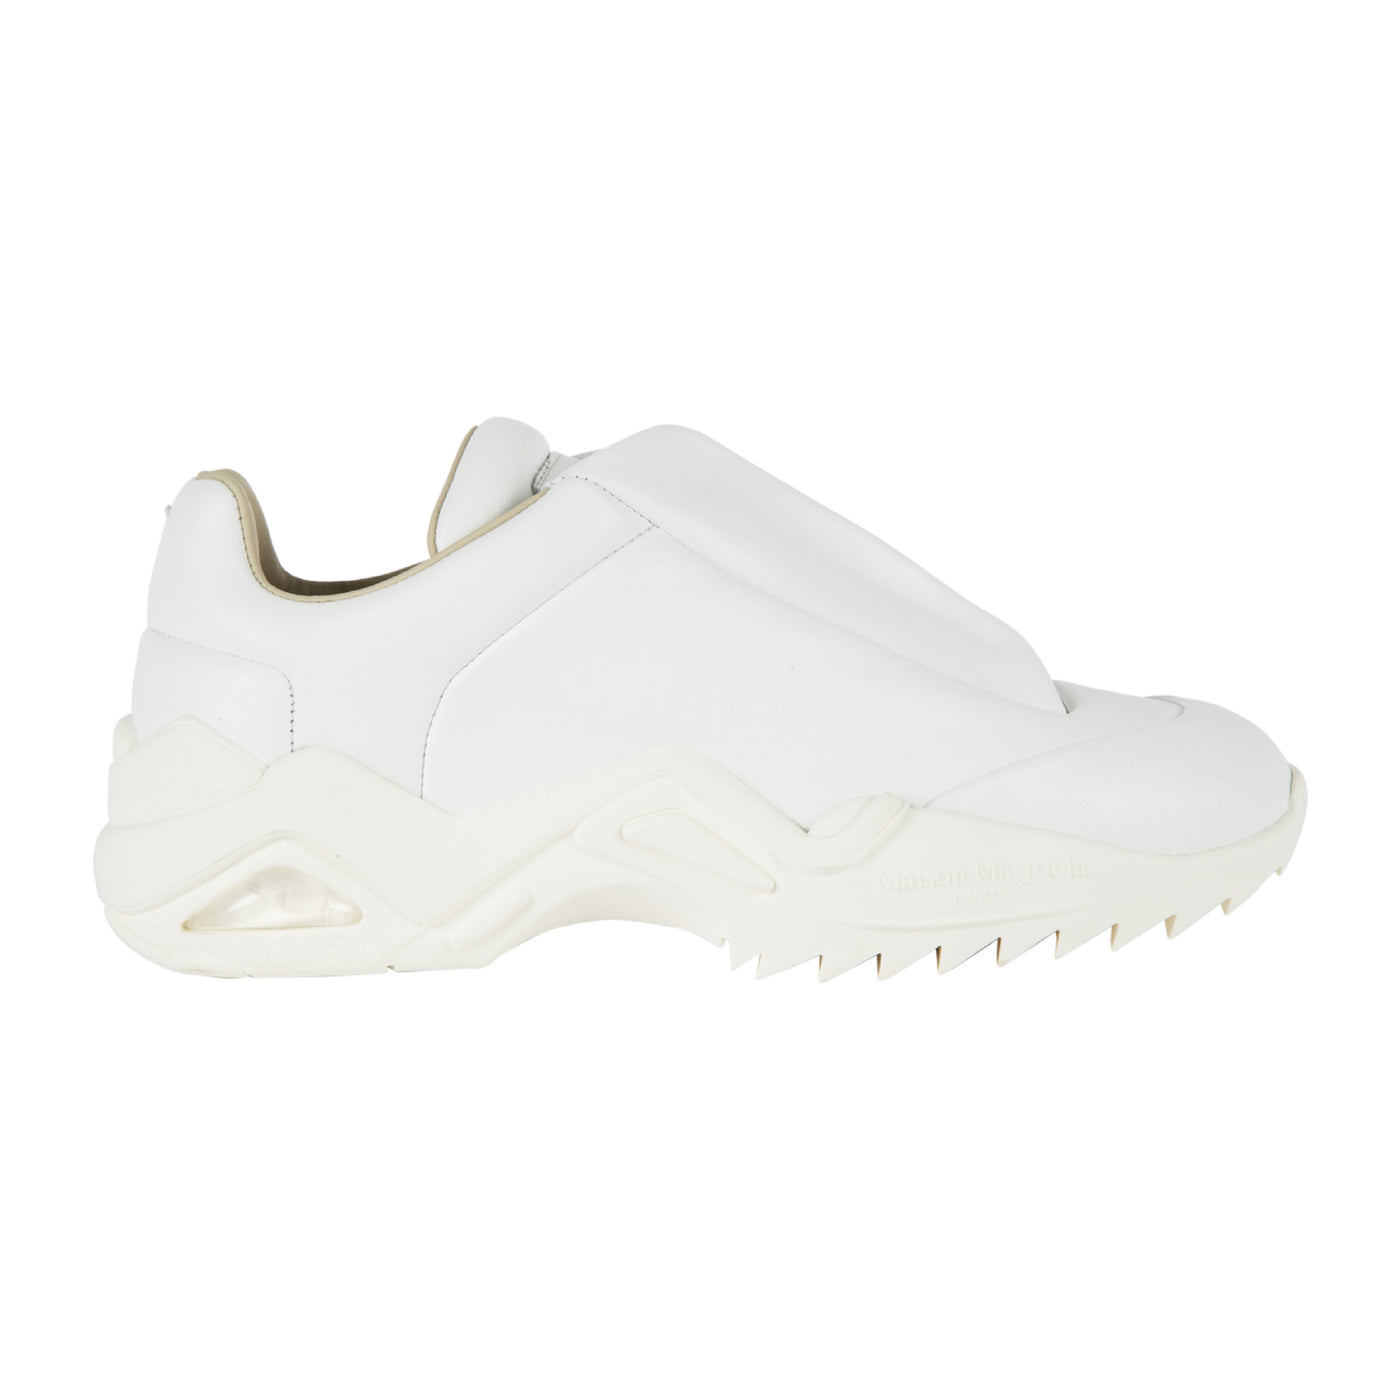 Load image into Gallery viewer, MAISON MARGIELA NEW FUTURE LOW TOP SNEAKER WHITE